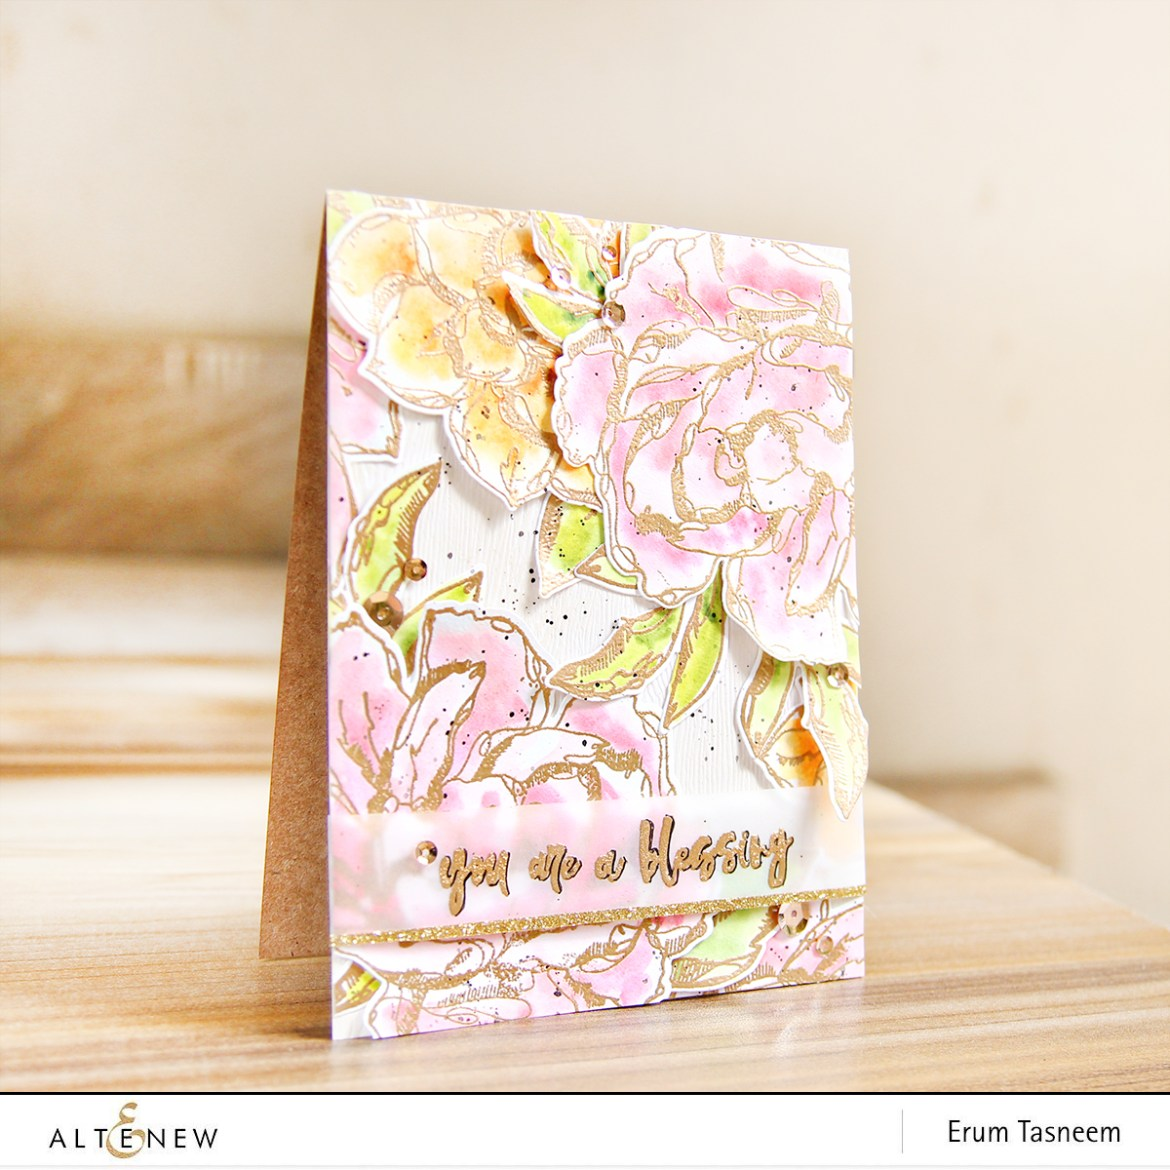 Altenew Inked Flora Stamp Set watercoloured with Altenew Watercolours | Erum Tasneem | @pr0digy0